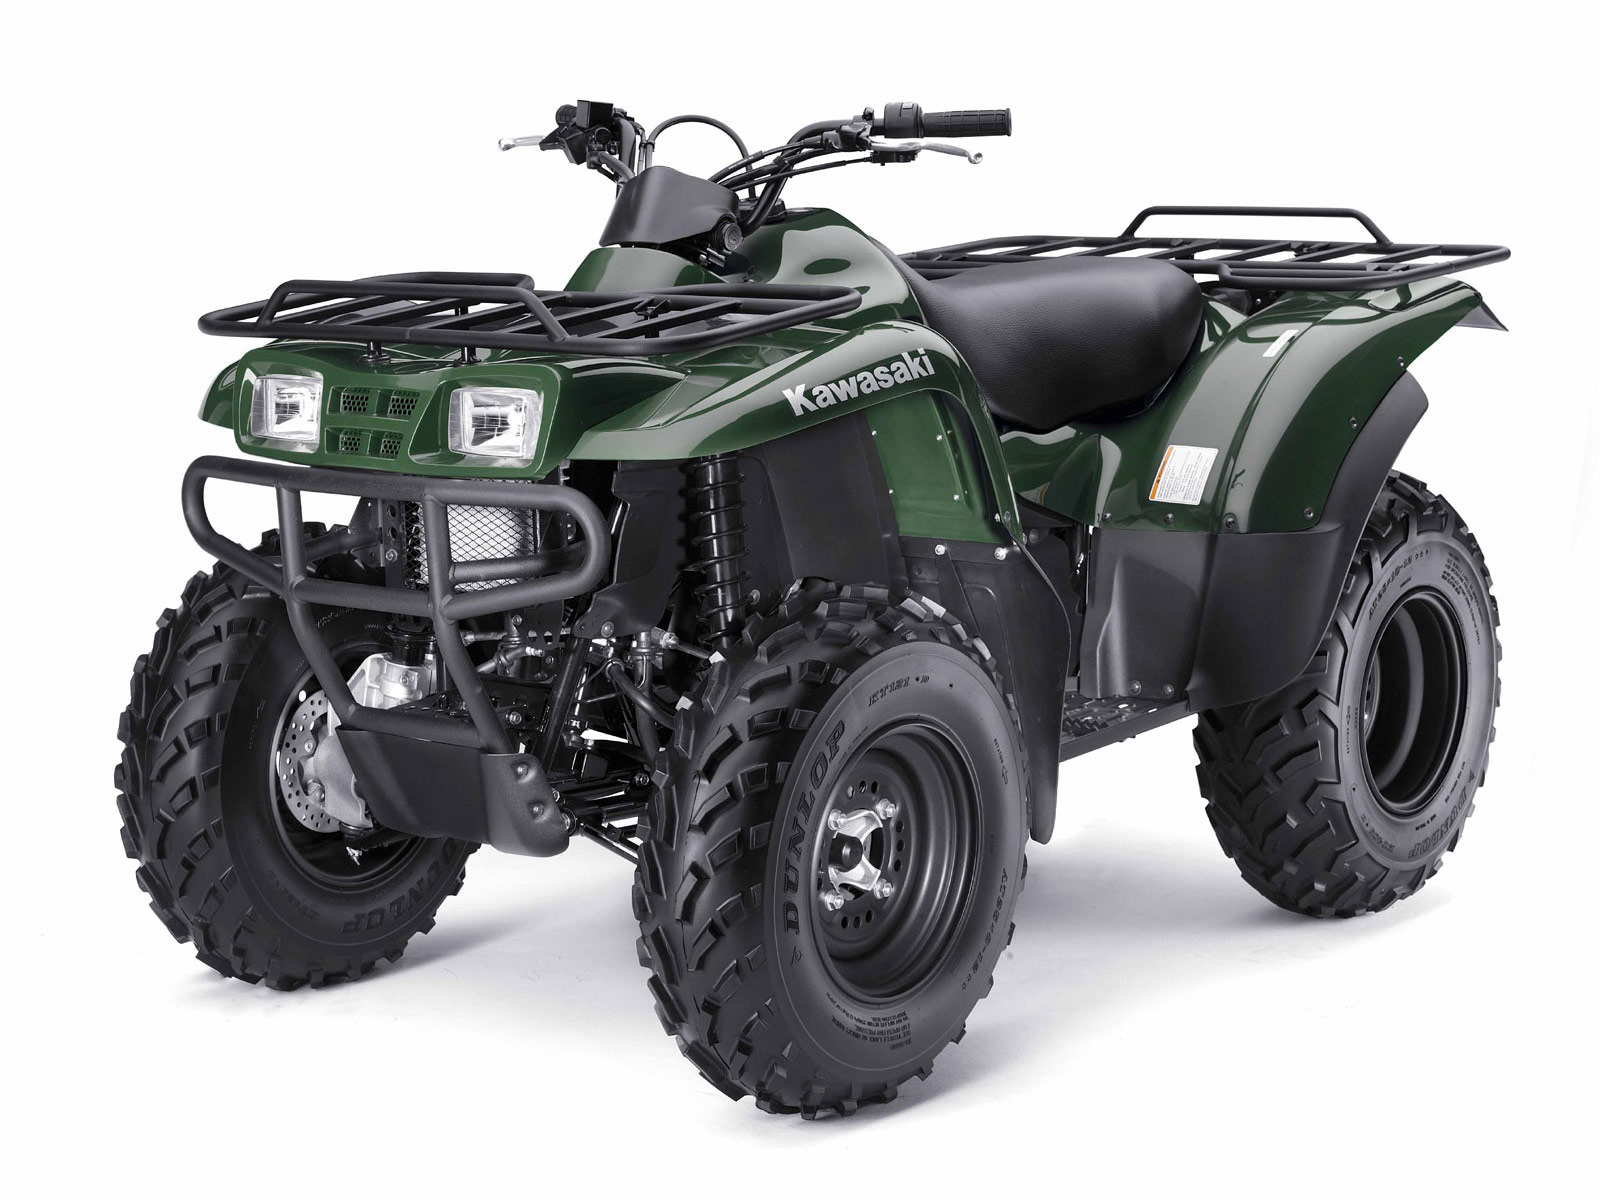 kawasaki atv pictures 2009 prairie 360 accident lawyers info. Black Bedroom Furniture Sets. Home Design Ideas